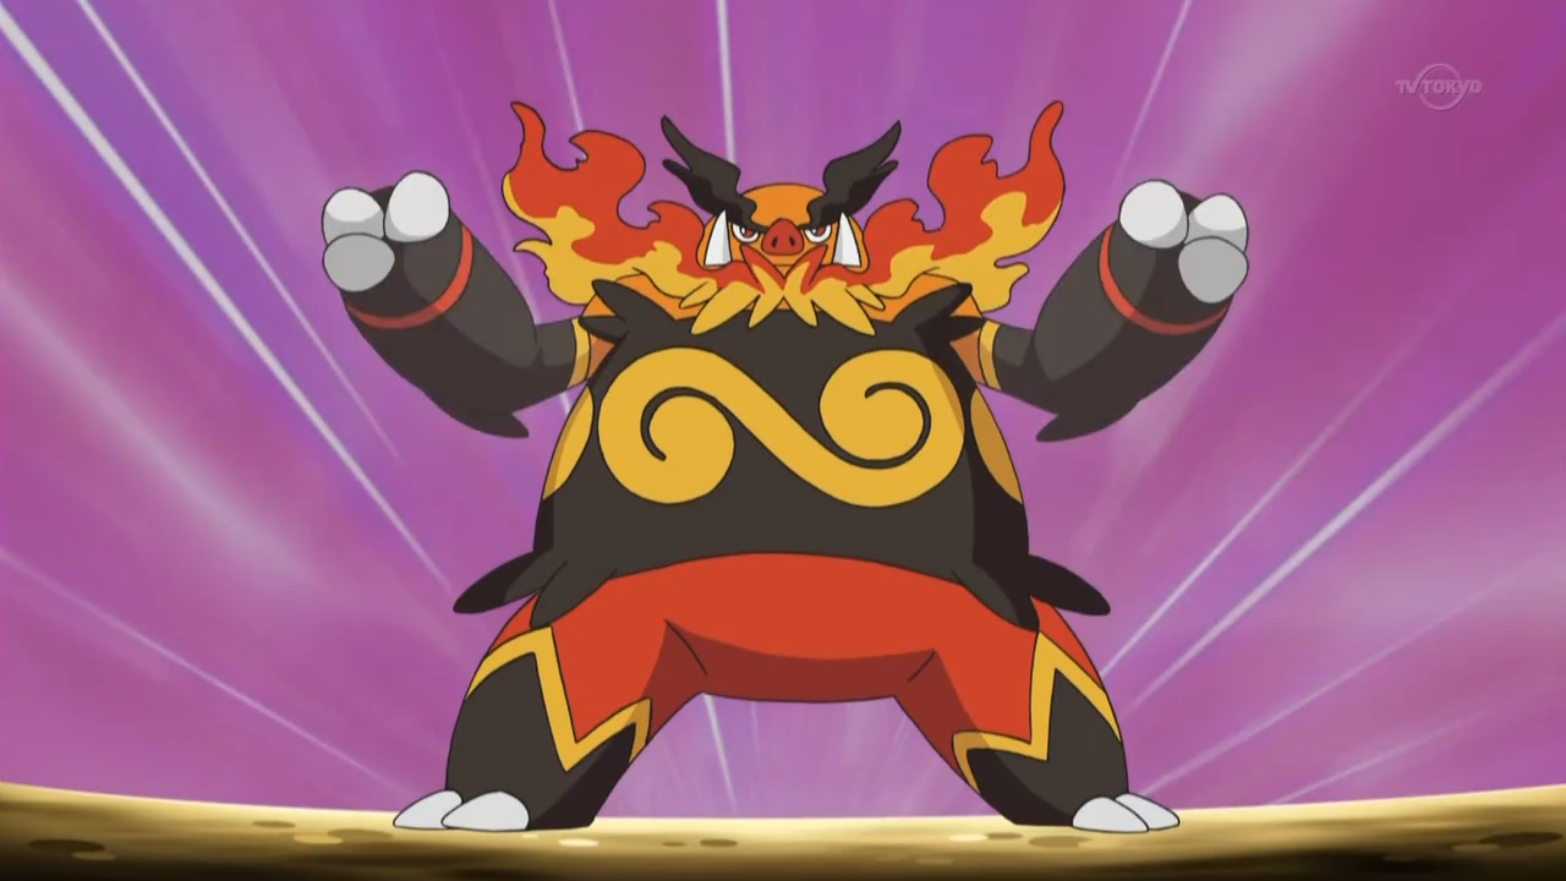 Emboar was first seen along with Heatmor when Shamus was double battling a trainer that owned a Watchog and a Mienshao. The two were able to defeat the Normal and Fighting-types. It was then used against Ash's Snivy and Tepig, but fainted when Ash's Tepig evolved into Pignite and used a Fire Pledge/Flame Charge combo. Emboar is the other Tepig who is more talented than the previous Tepig who is currently owned by Ash after Shamus reveals to Ash about his cruel nature for abandoning Tepig.